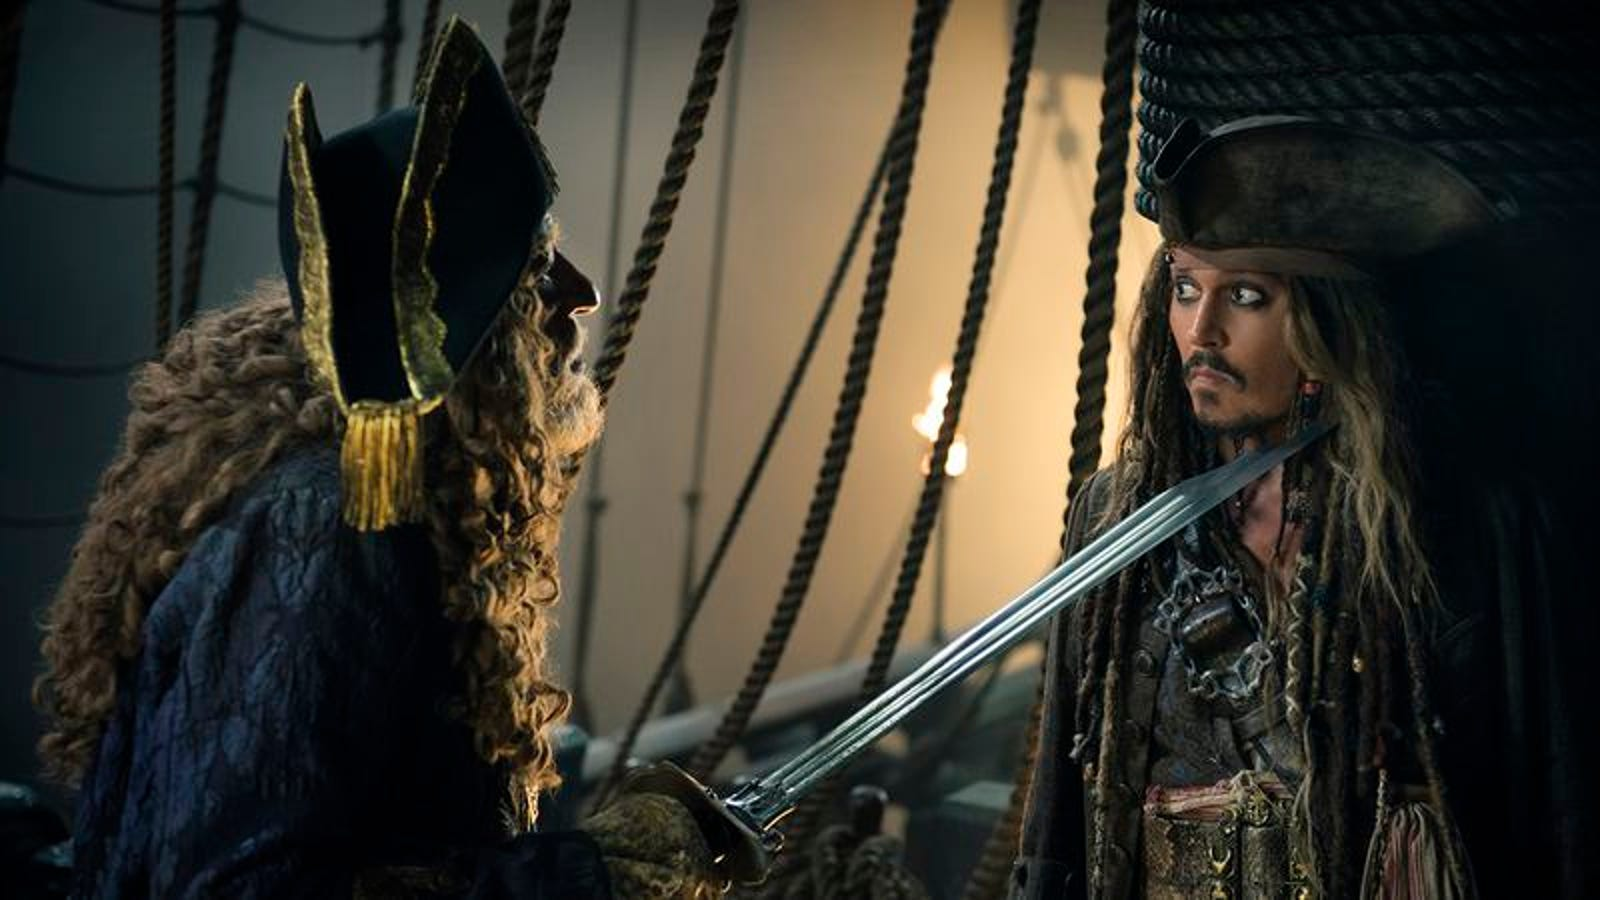 Pirates Of The Caribbean slogs out to sea for the fifth time in Dead